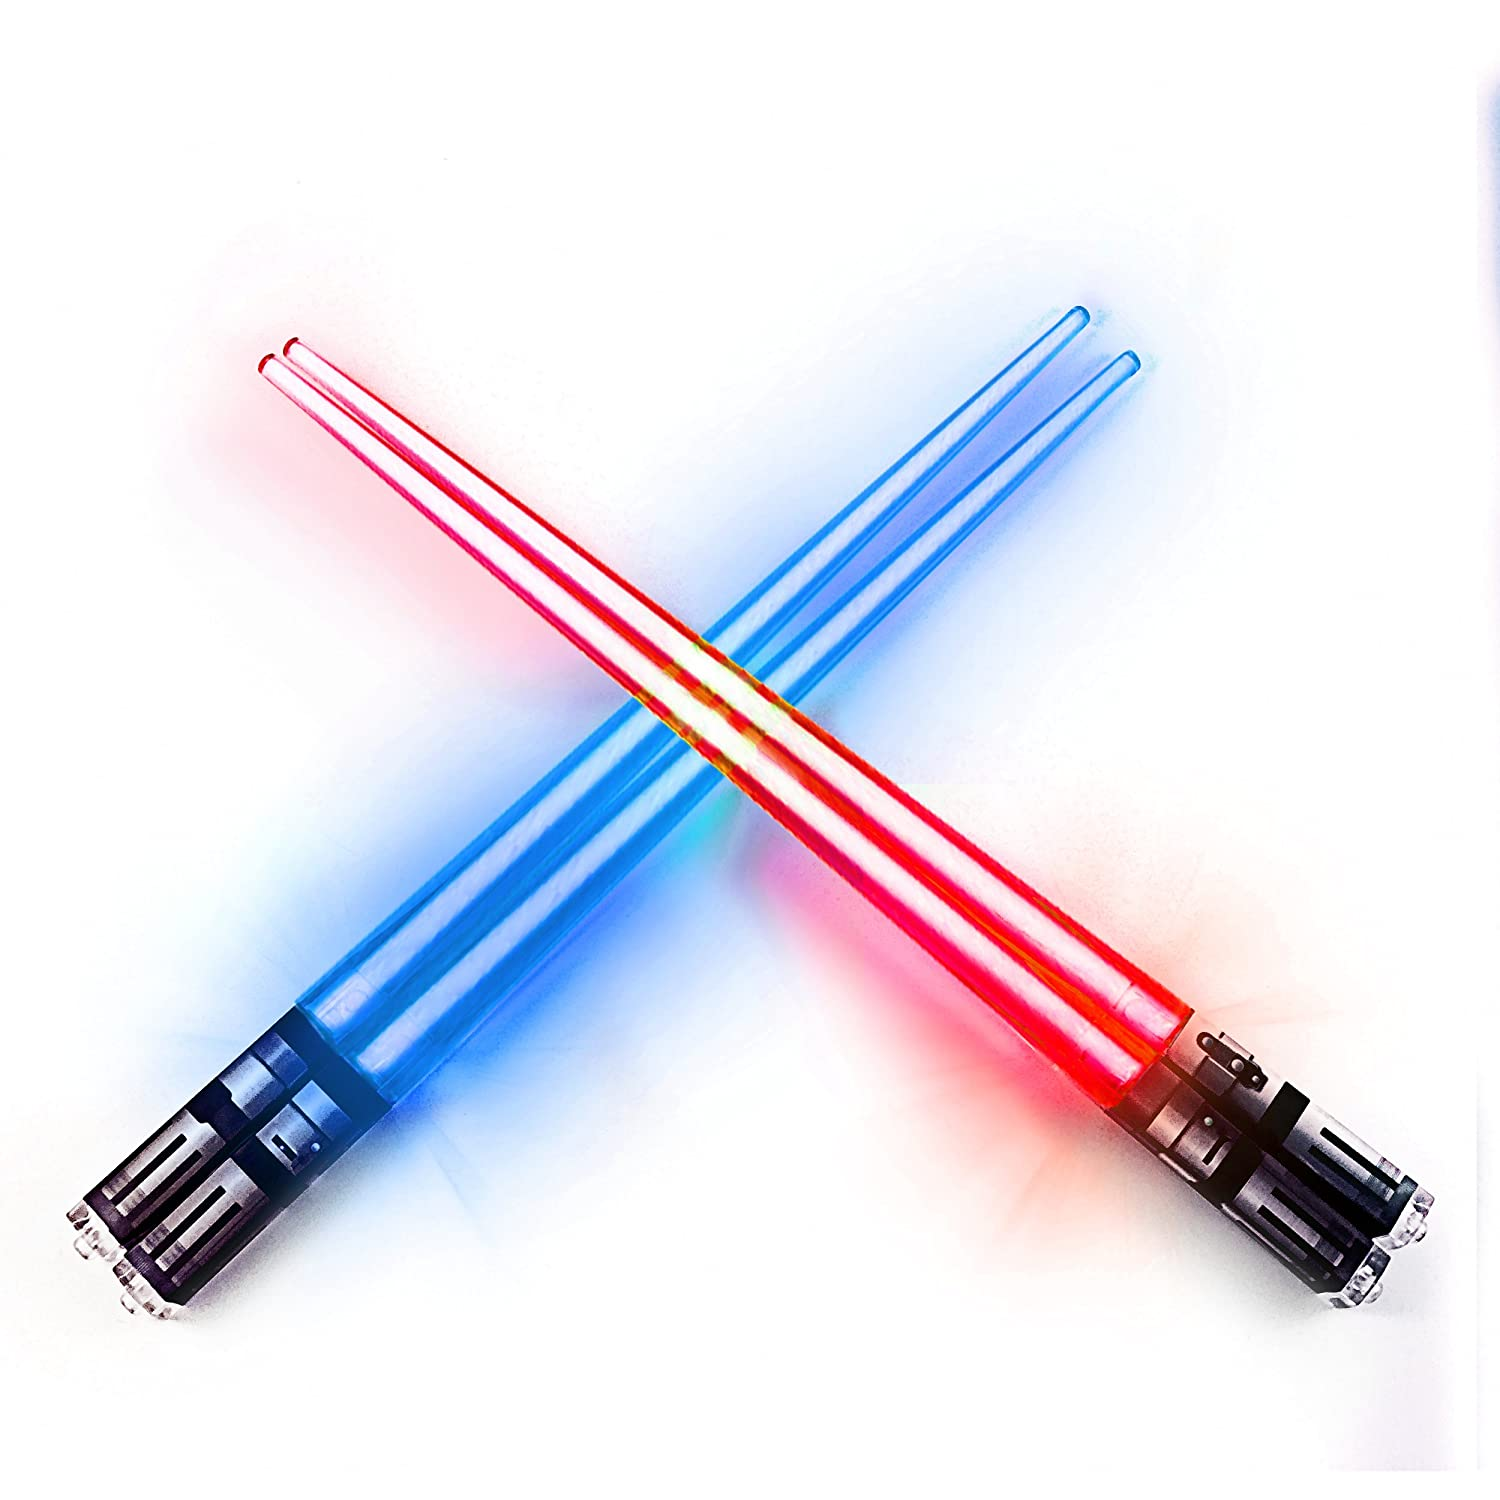 LIGHTSABER CHOPSTICKS LIGHT UP STAR WARS LED Glowing Light Saber Chop Sticks REUSABLE Sushi Lightup Sabers Red and Blue 2 Pairs